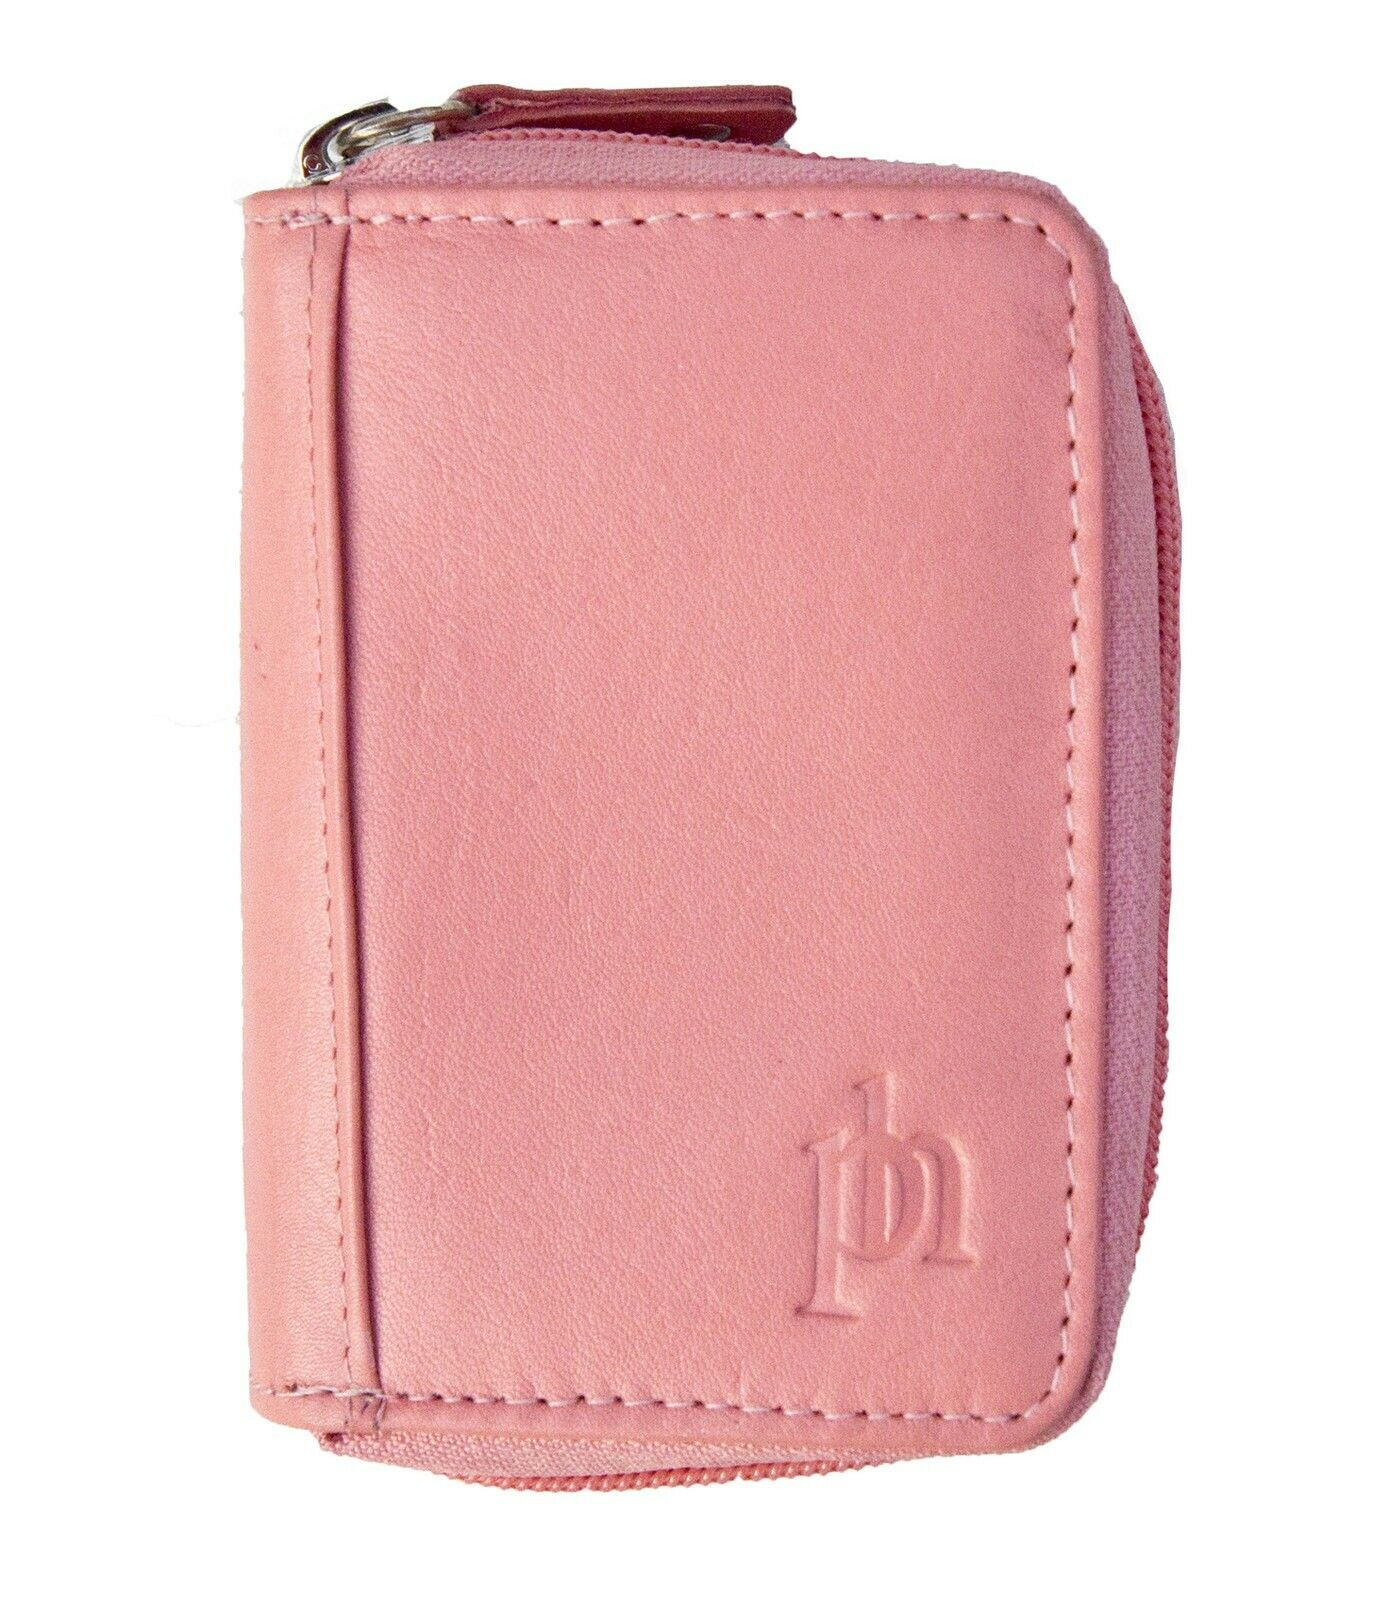 NEW Concerntina- Fan Style Coral Pink Leather Credit Card Holder by Prime Hide